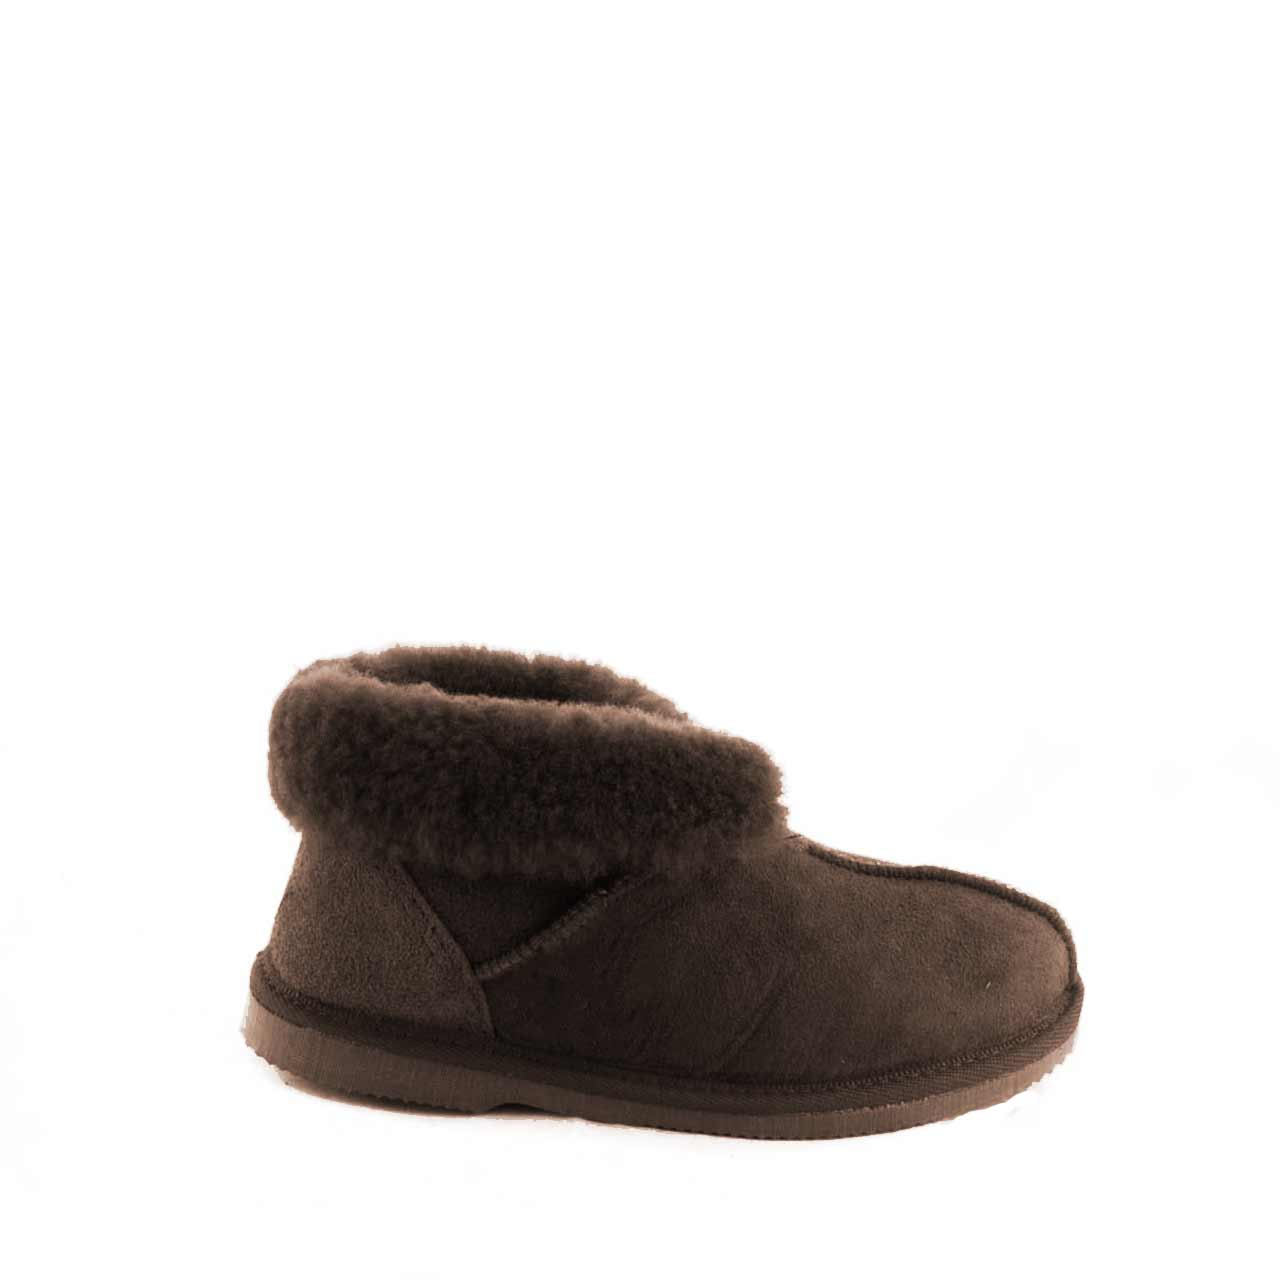 93b56b8185a5 Prince Sheepskin Slippers - Mens